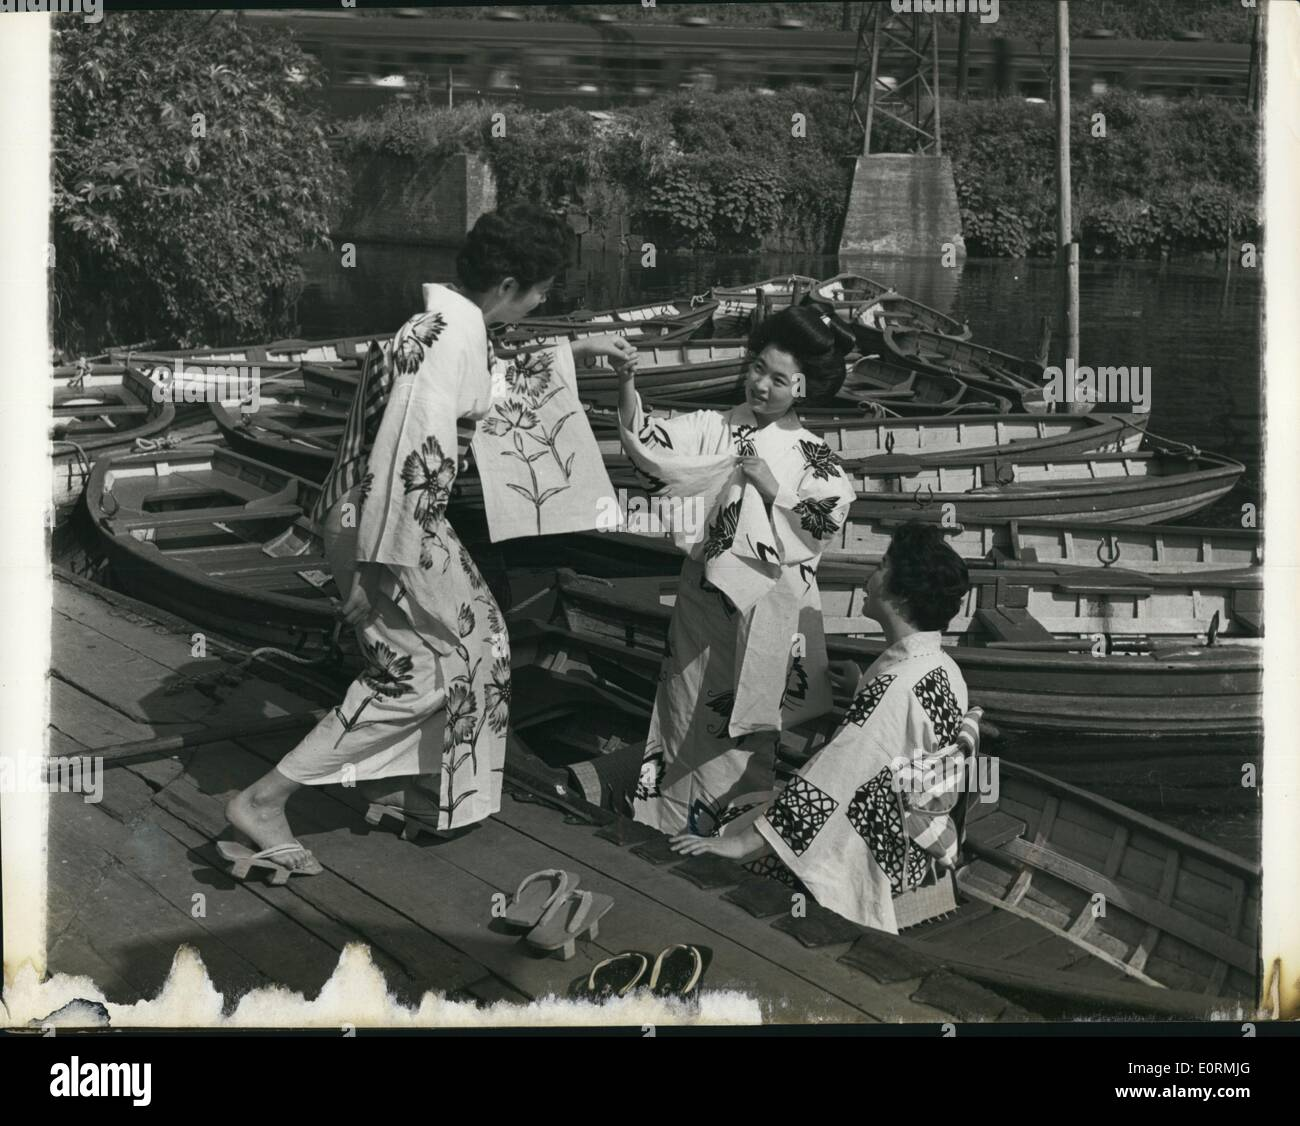 Jan 1, 1960 - Geishas off duty. Before the evening's entertainment starts, the Geisha girls wearing simple Kimonos Stock Photo